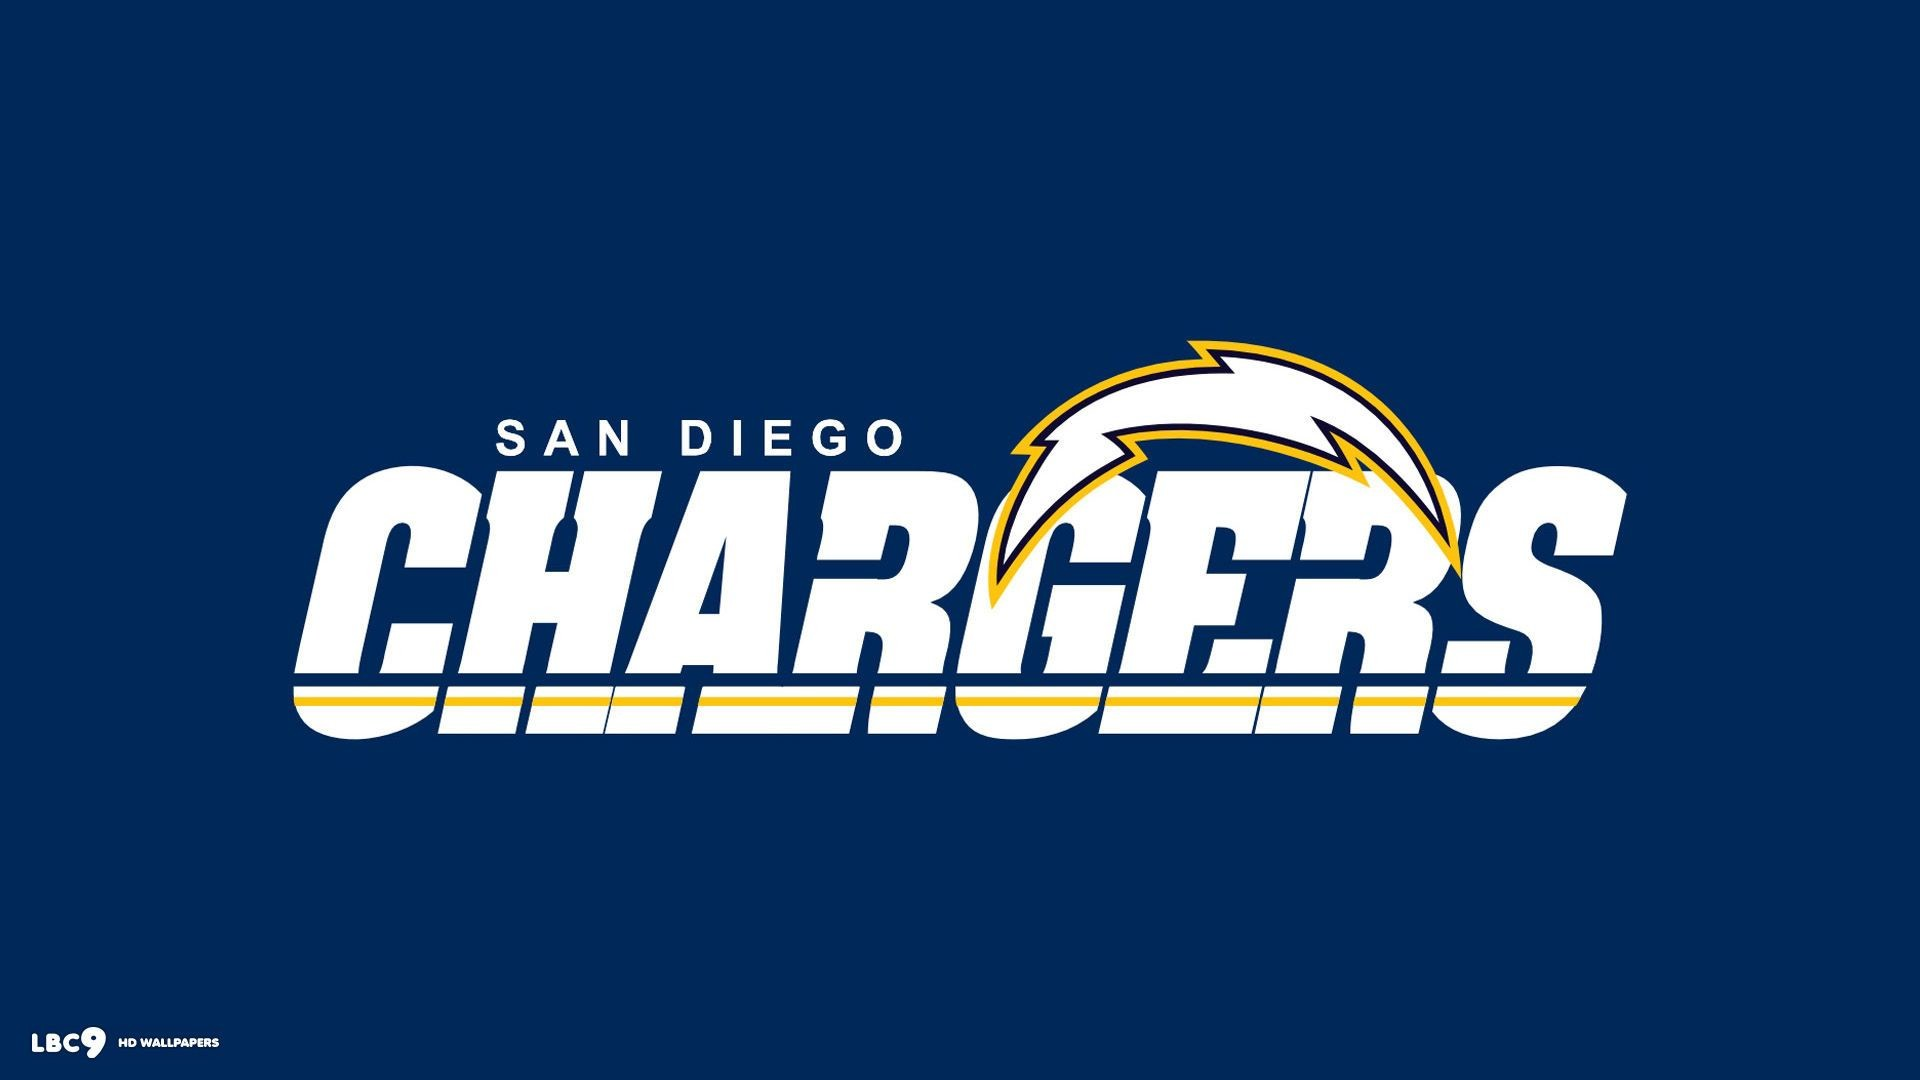 San diego chargers wallpapers.